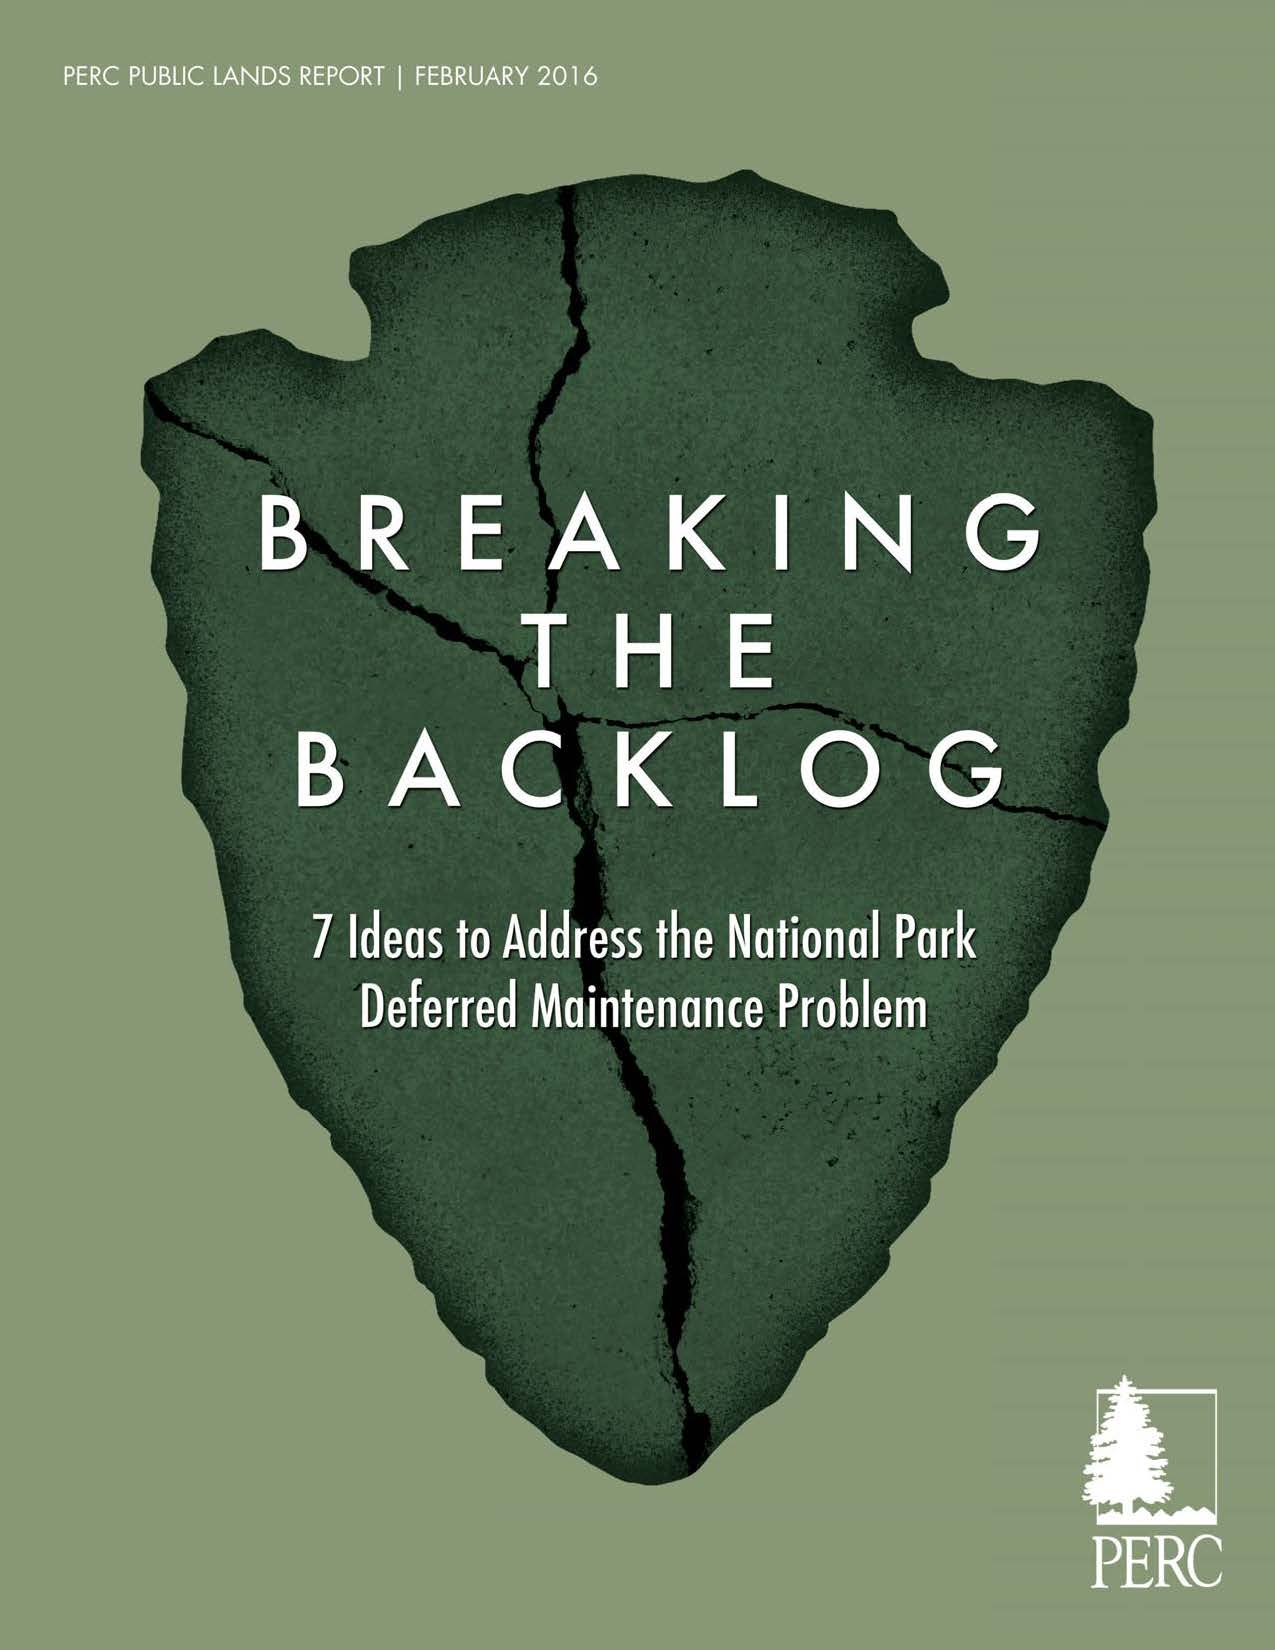 Breaking the Backlog: Deferred Maintenance in our National Parks